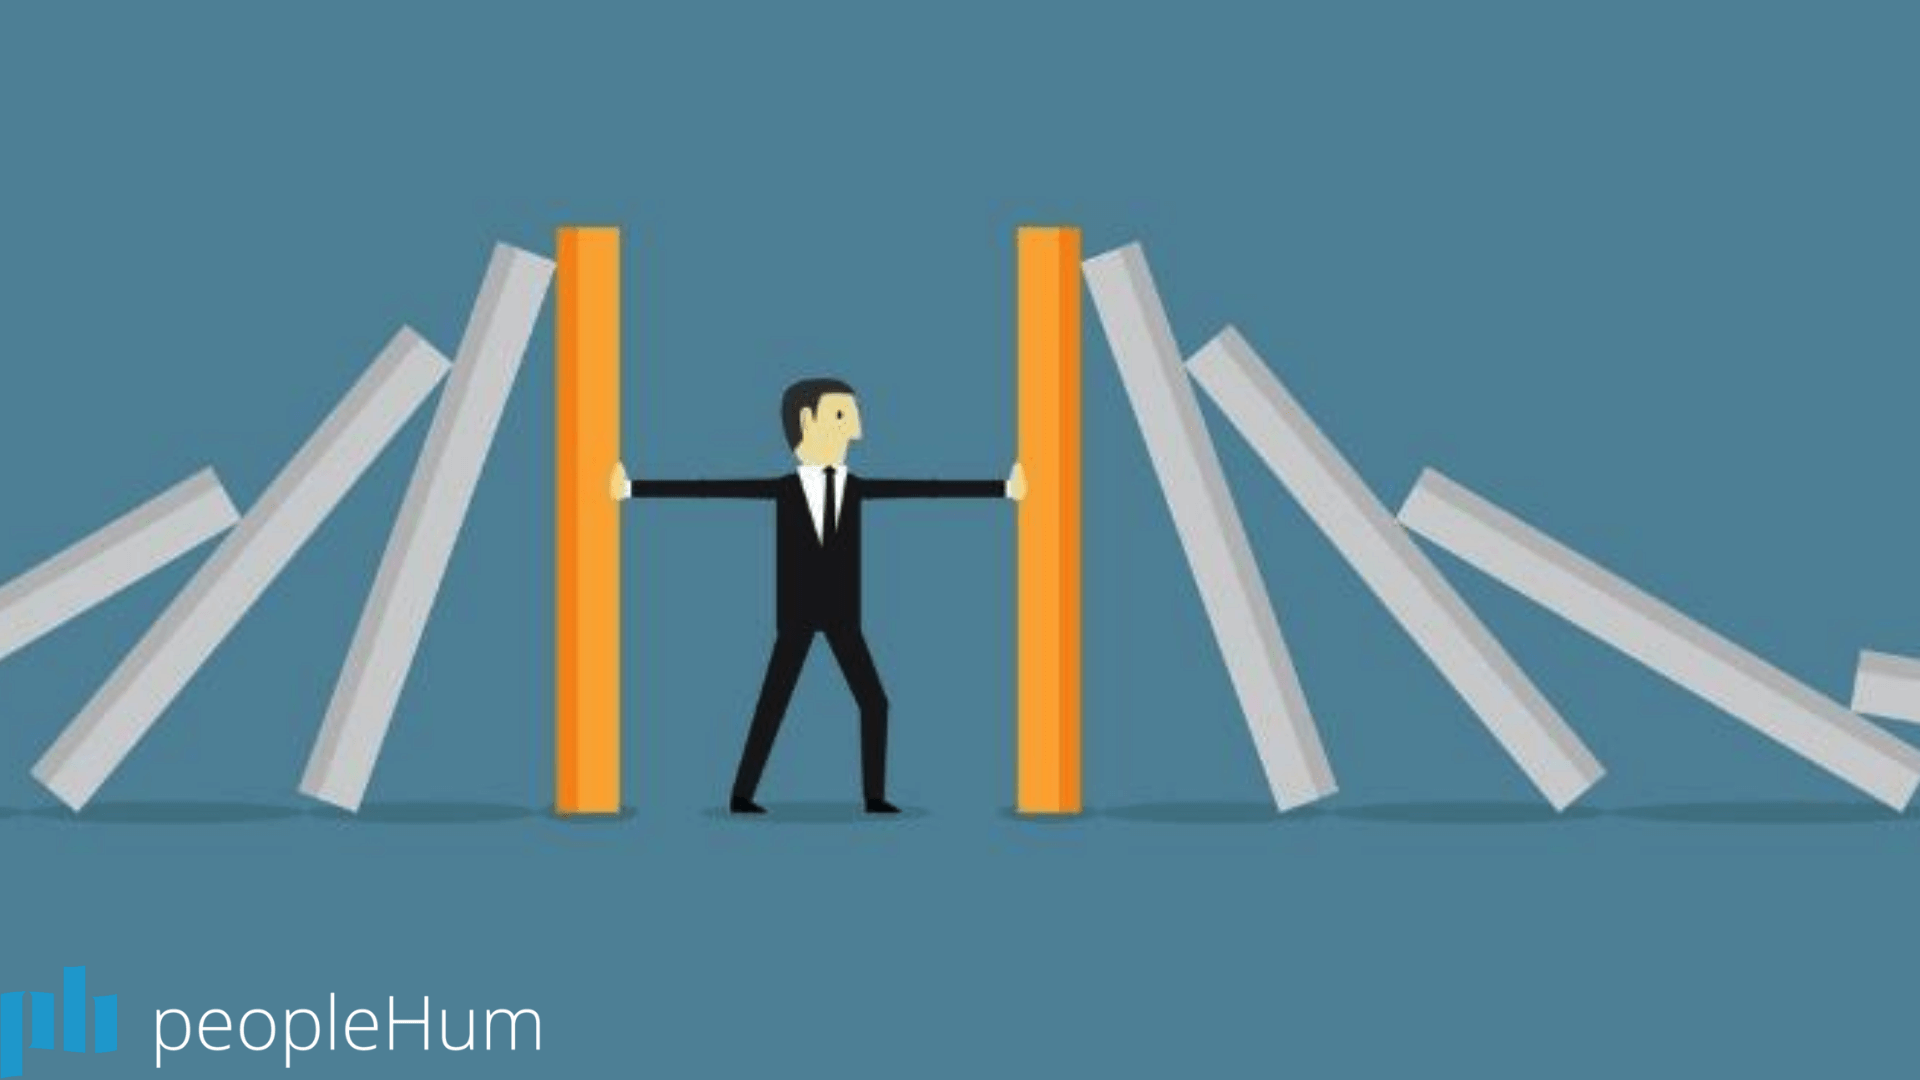 Leading in times of uncertainty | peopleHum